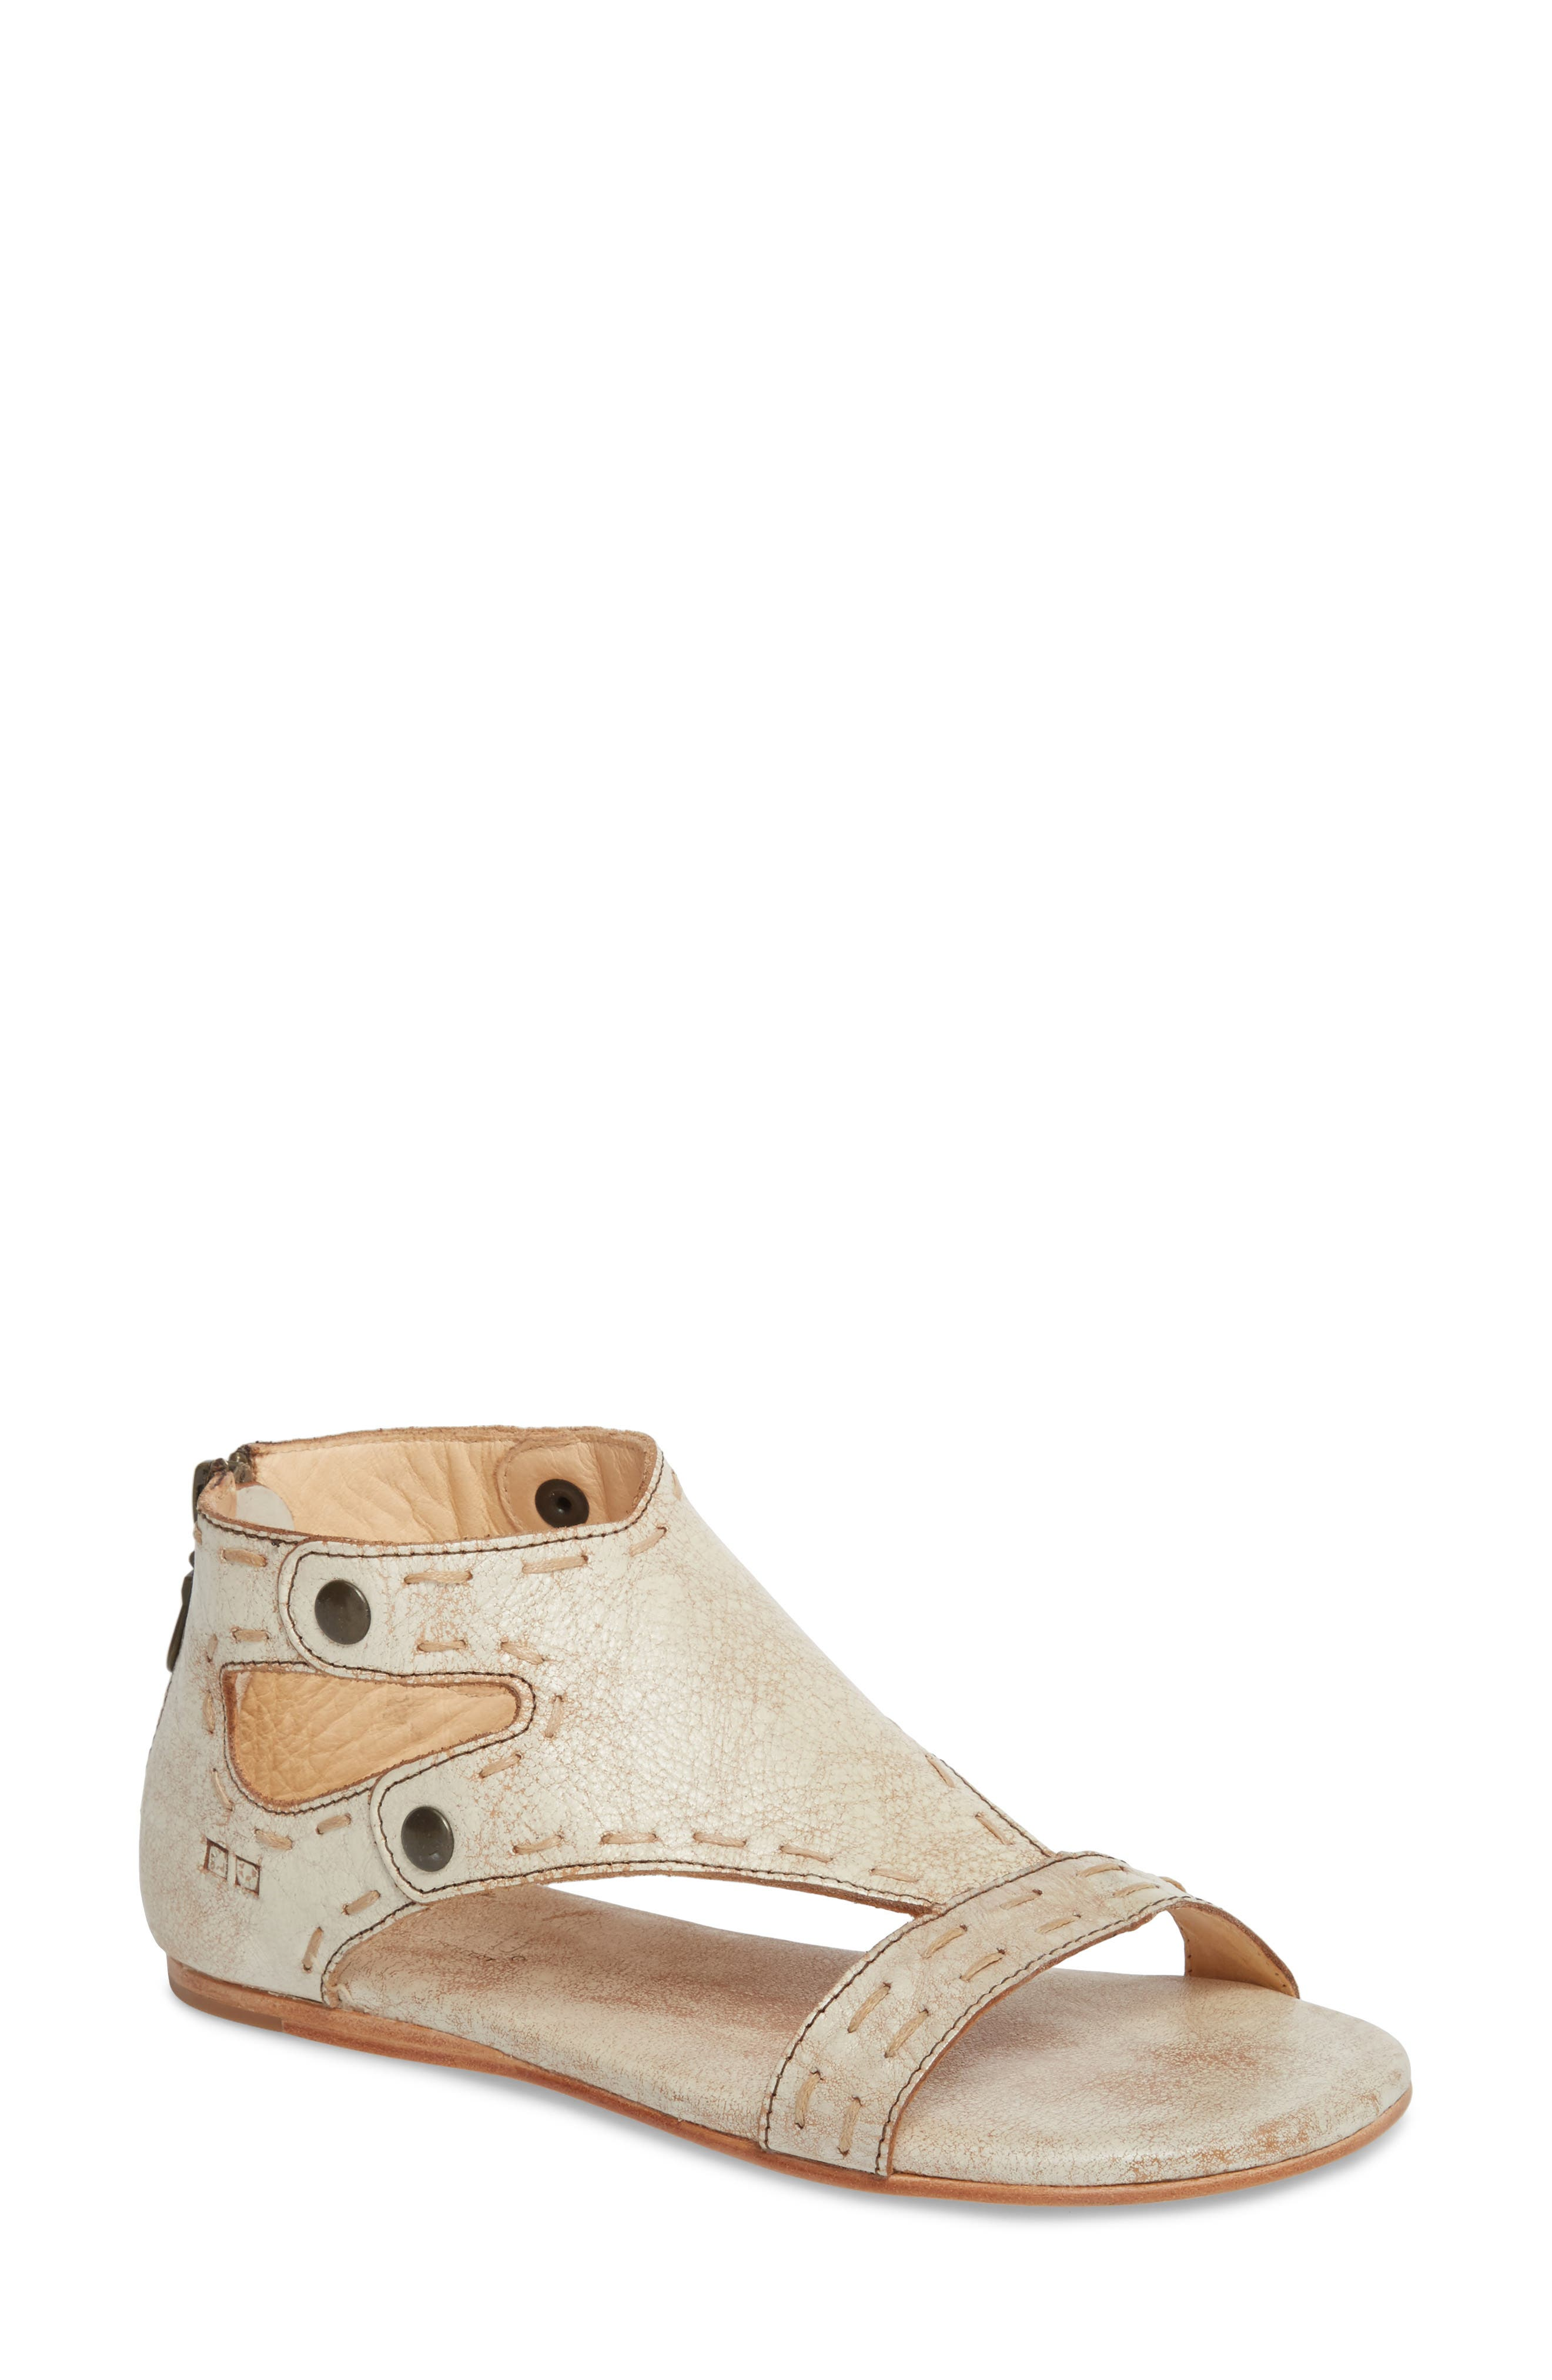 Bed Stu Soto Sandal (Women)